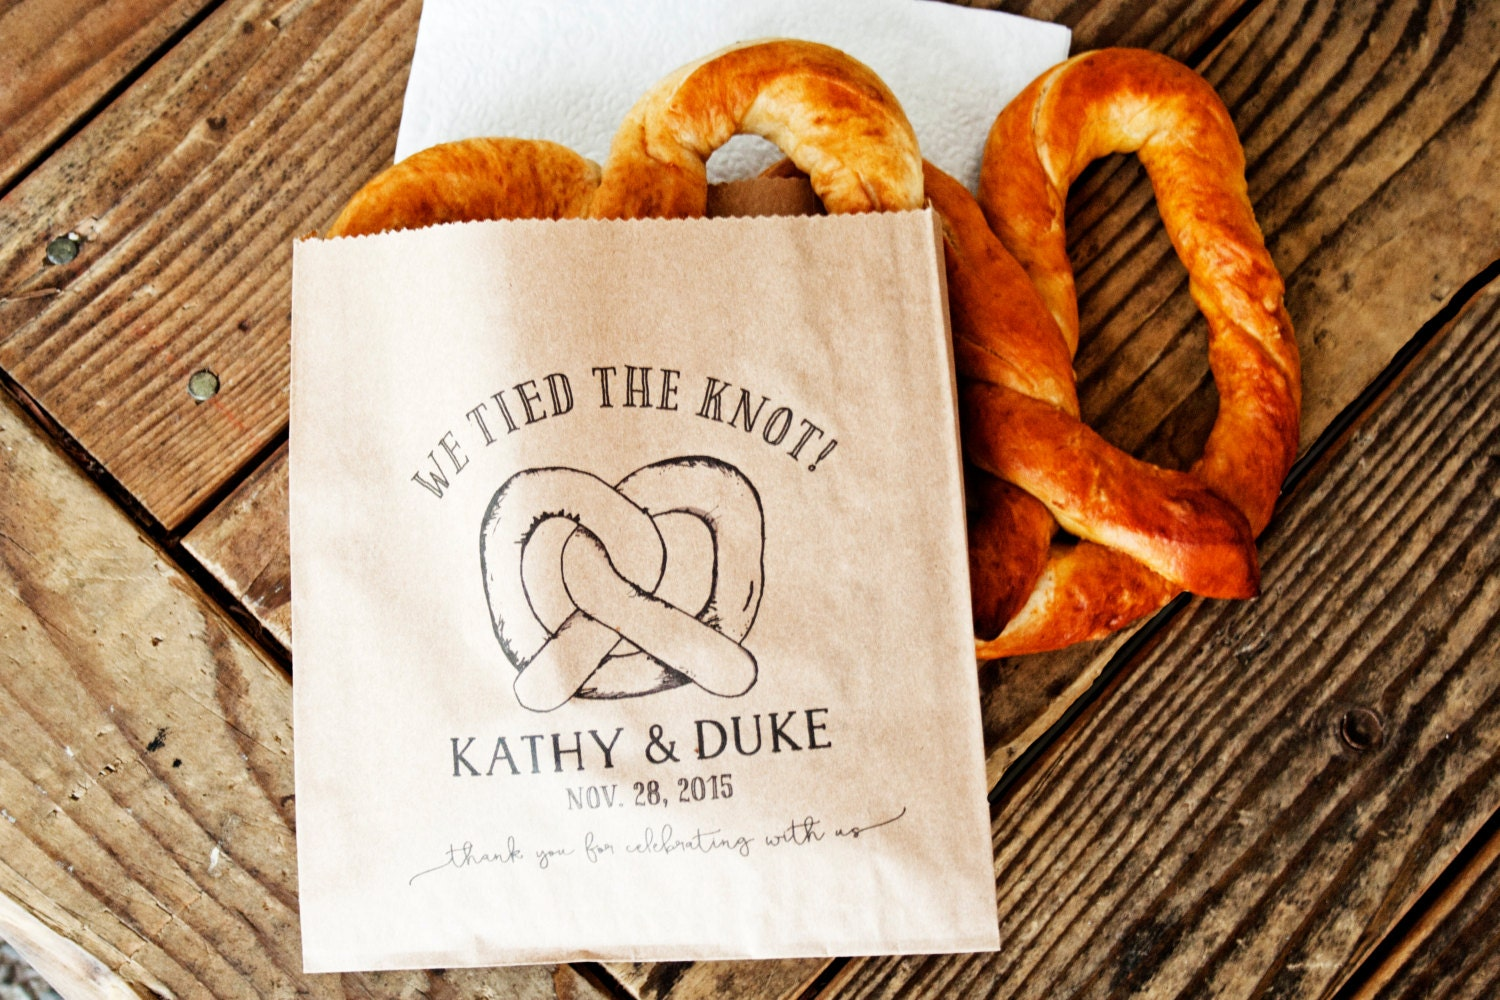 The Knot Wedding Gifts: Pretzel Wedding Favor Bags We Tied The Knot Wedding Snack